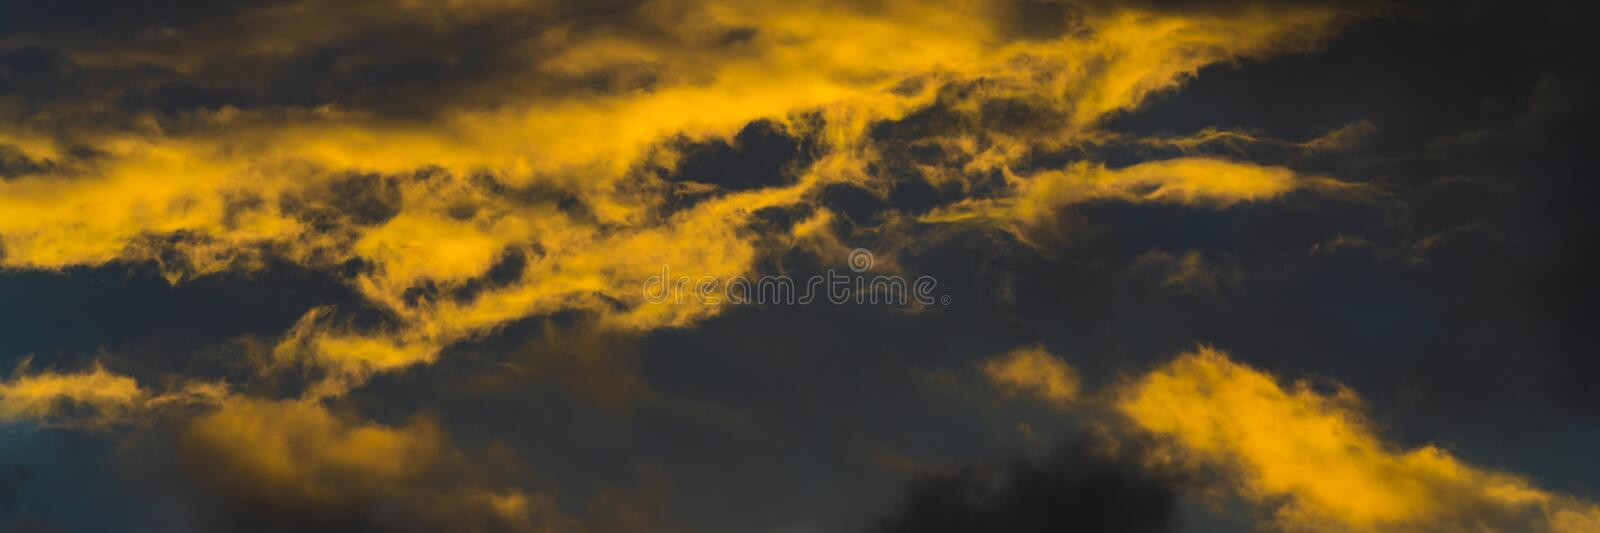 Stunning fluffy thunderstorm clouds illuminated by disappearing rays at sunset and dark thunderclouds floating across royalty free stock image